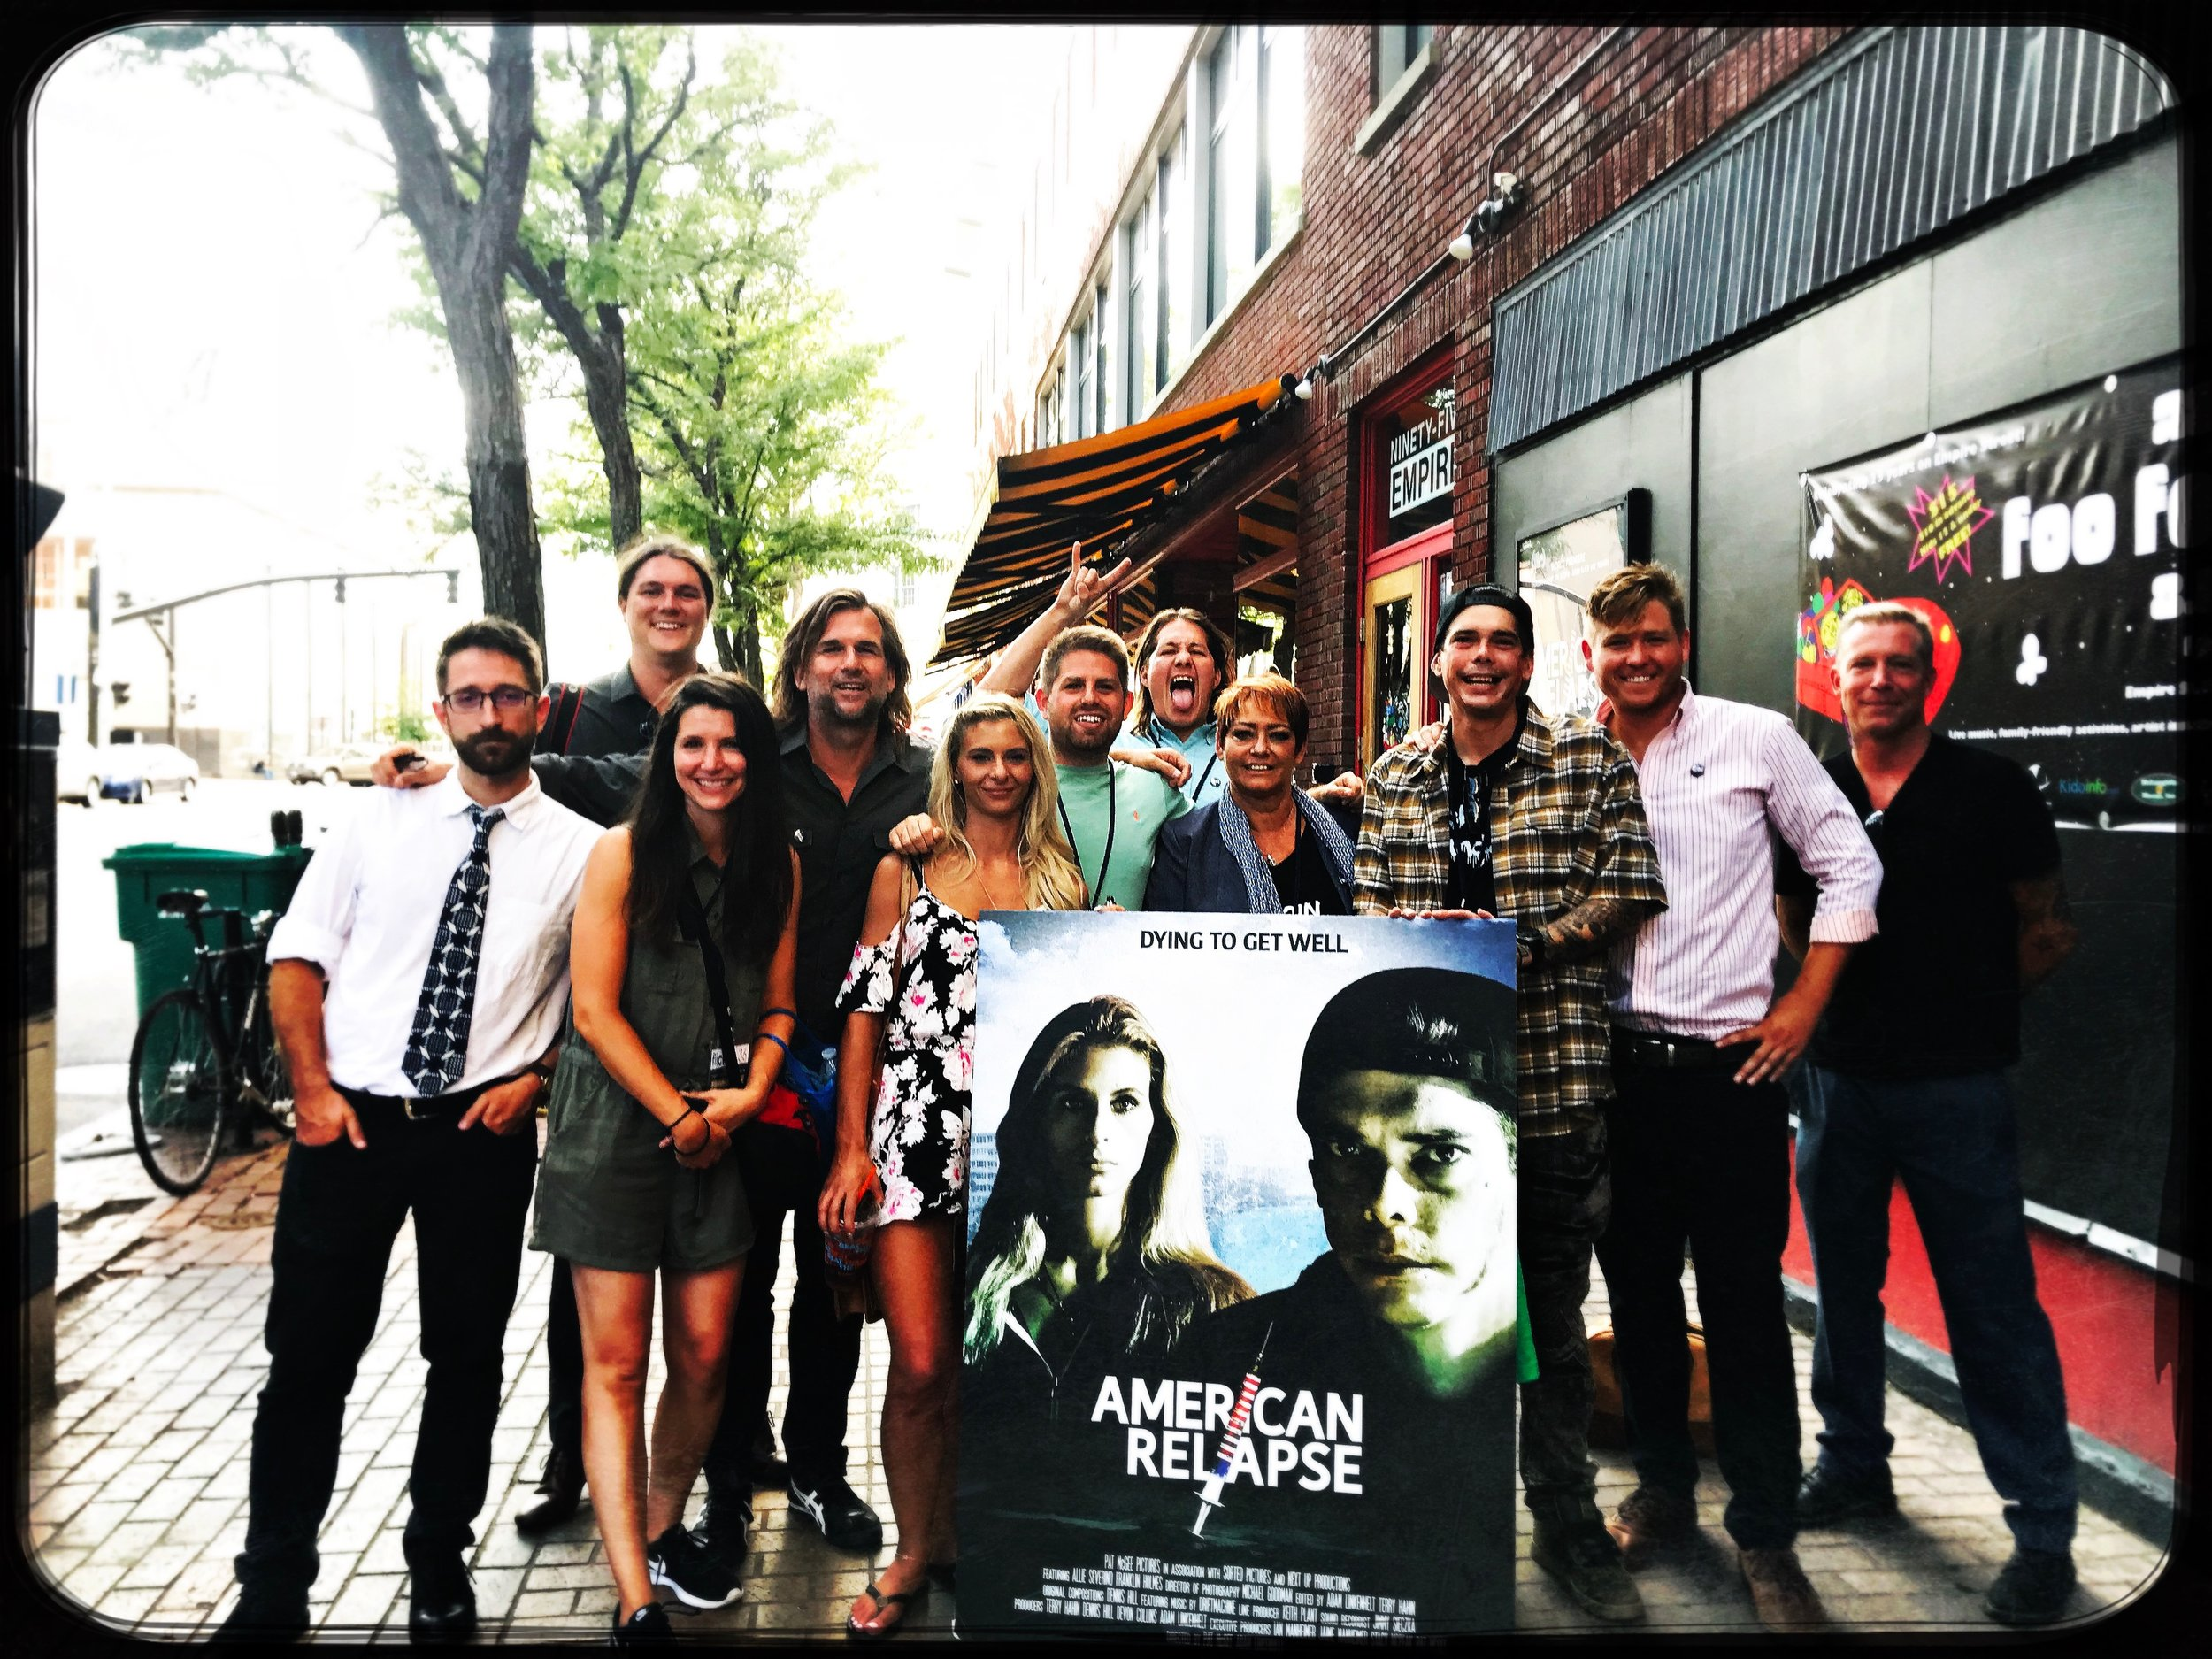 American Relapse Cast And Crew.jpg